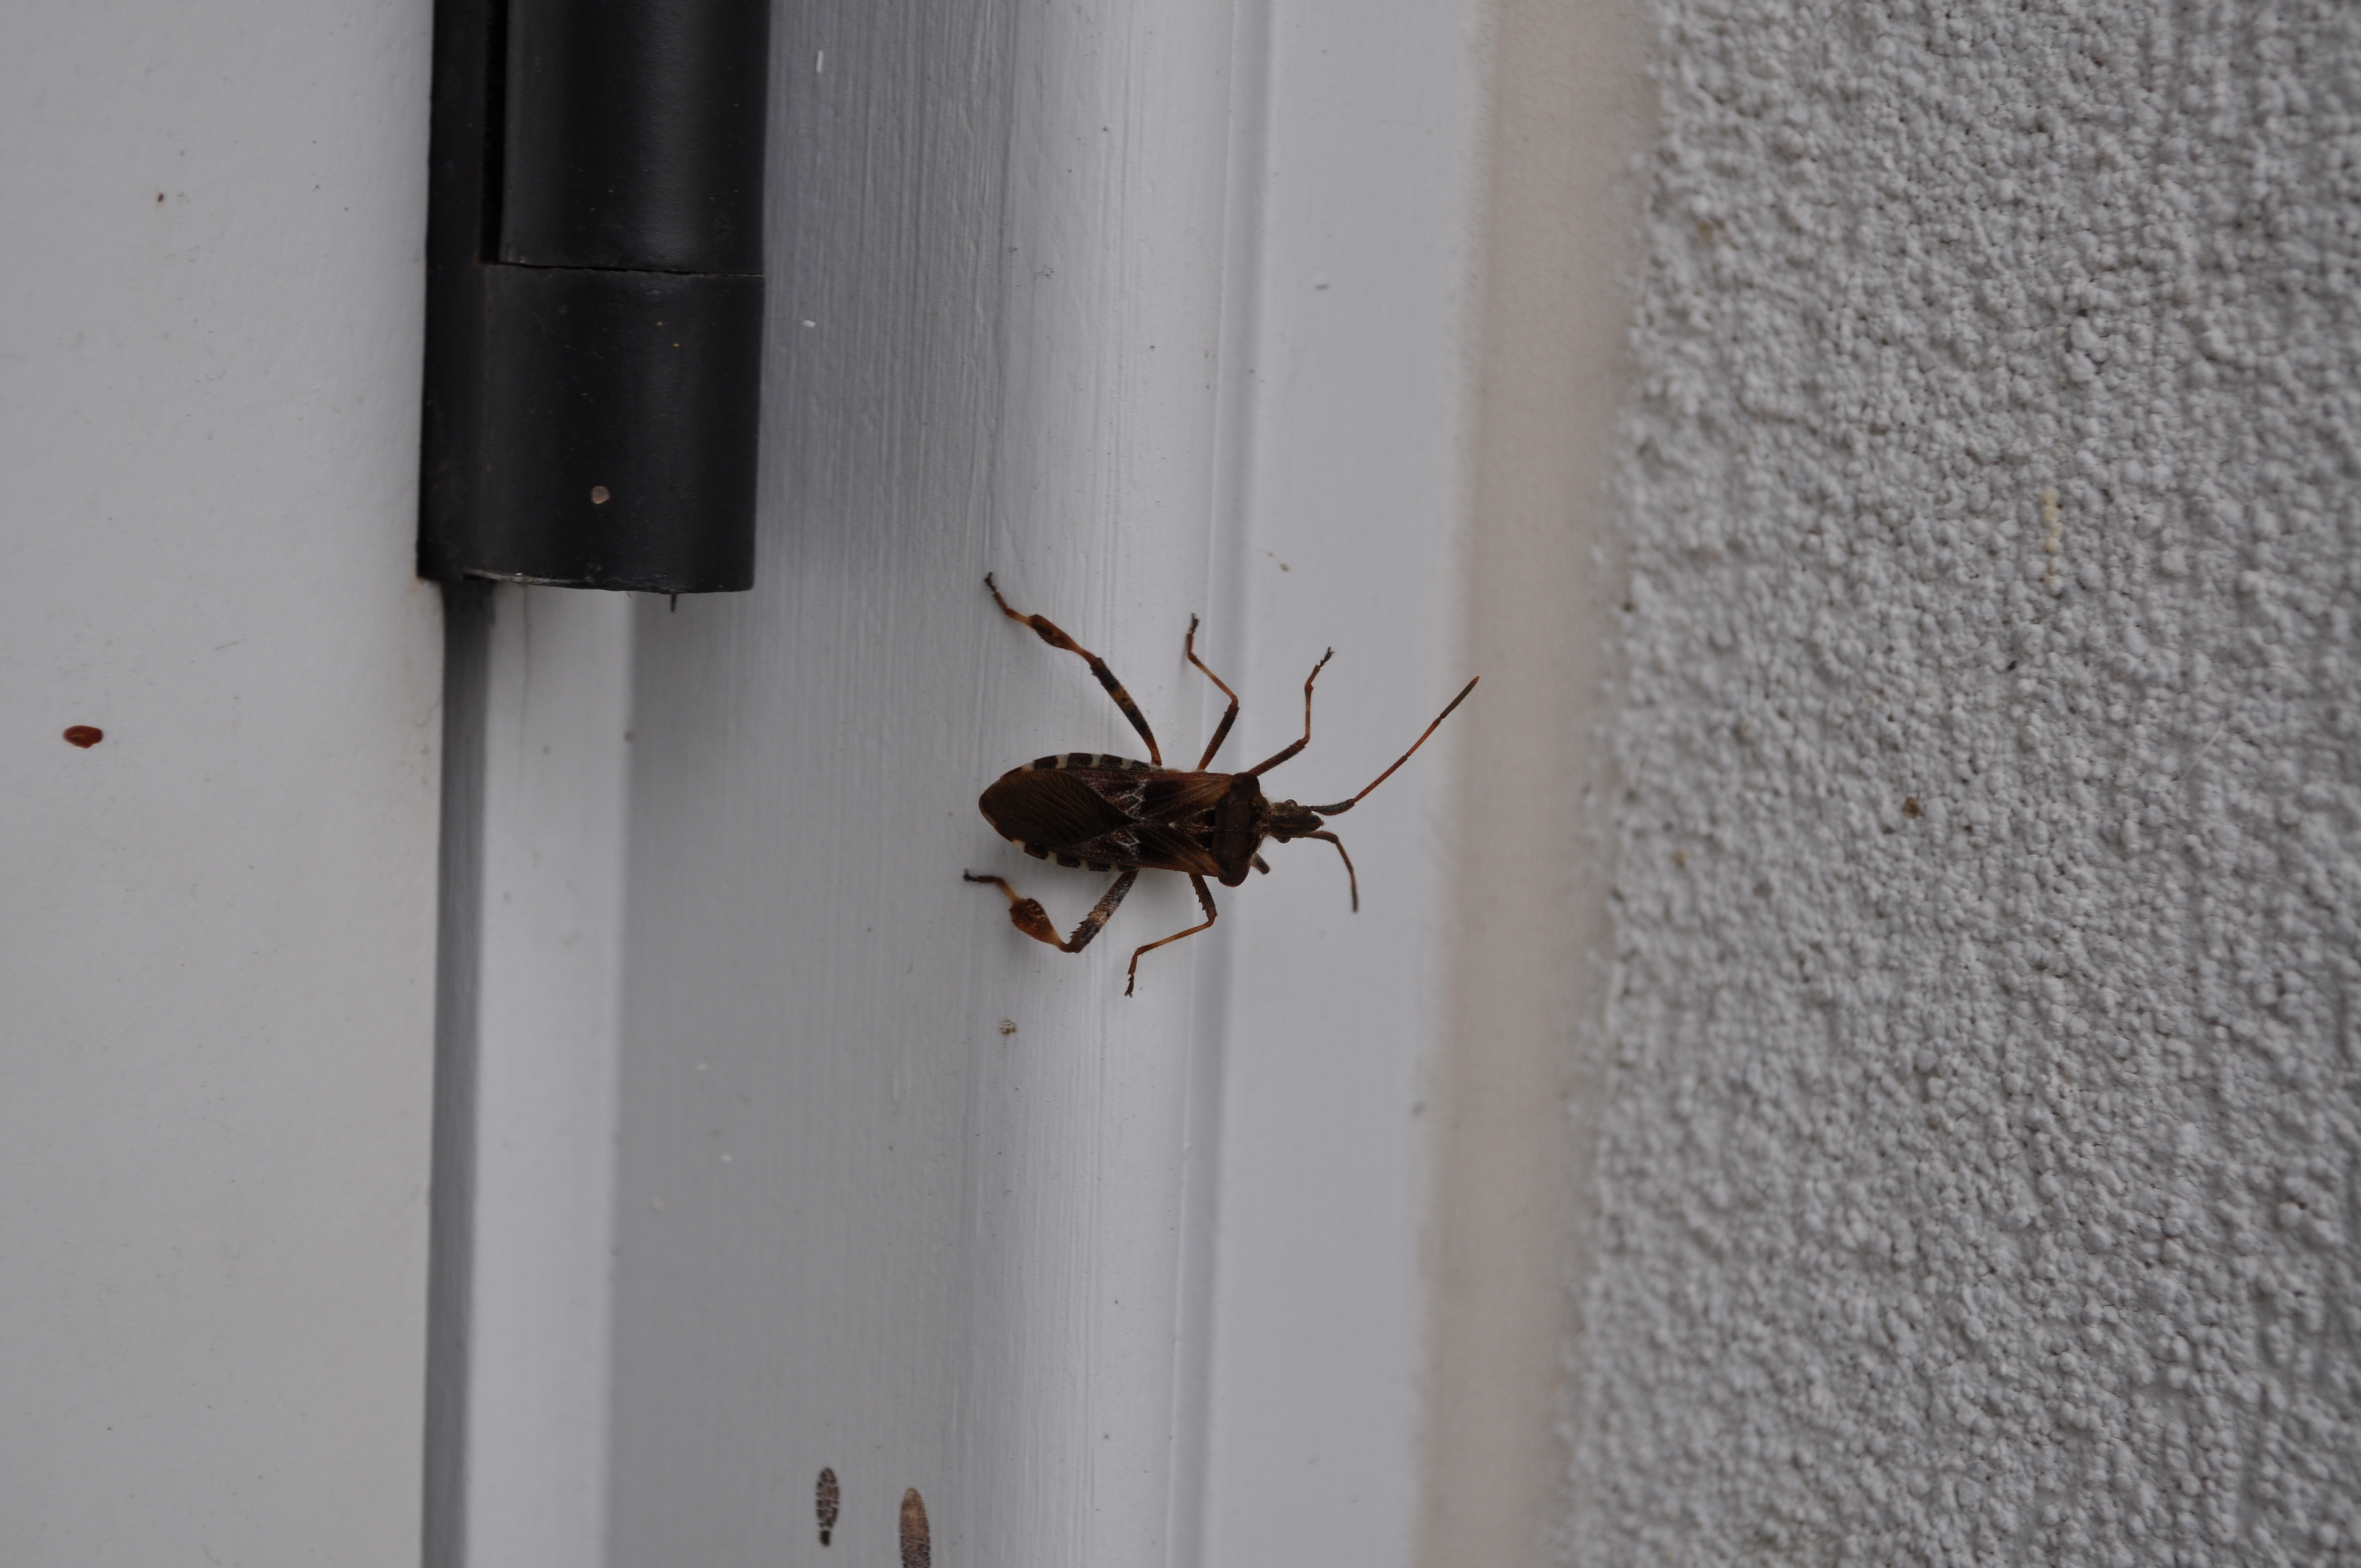 Spotted near a gap in a doorjamb, this western conifer seed bug shows a characteristic 'paddle' on its rear legs that are not present on the rounder marmorated stink bug. ANDREW MESSINGER